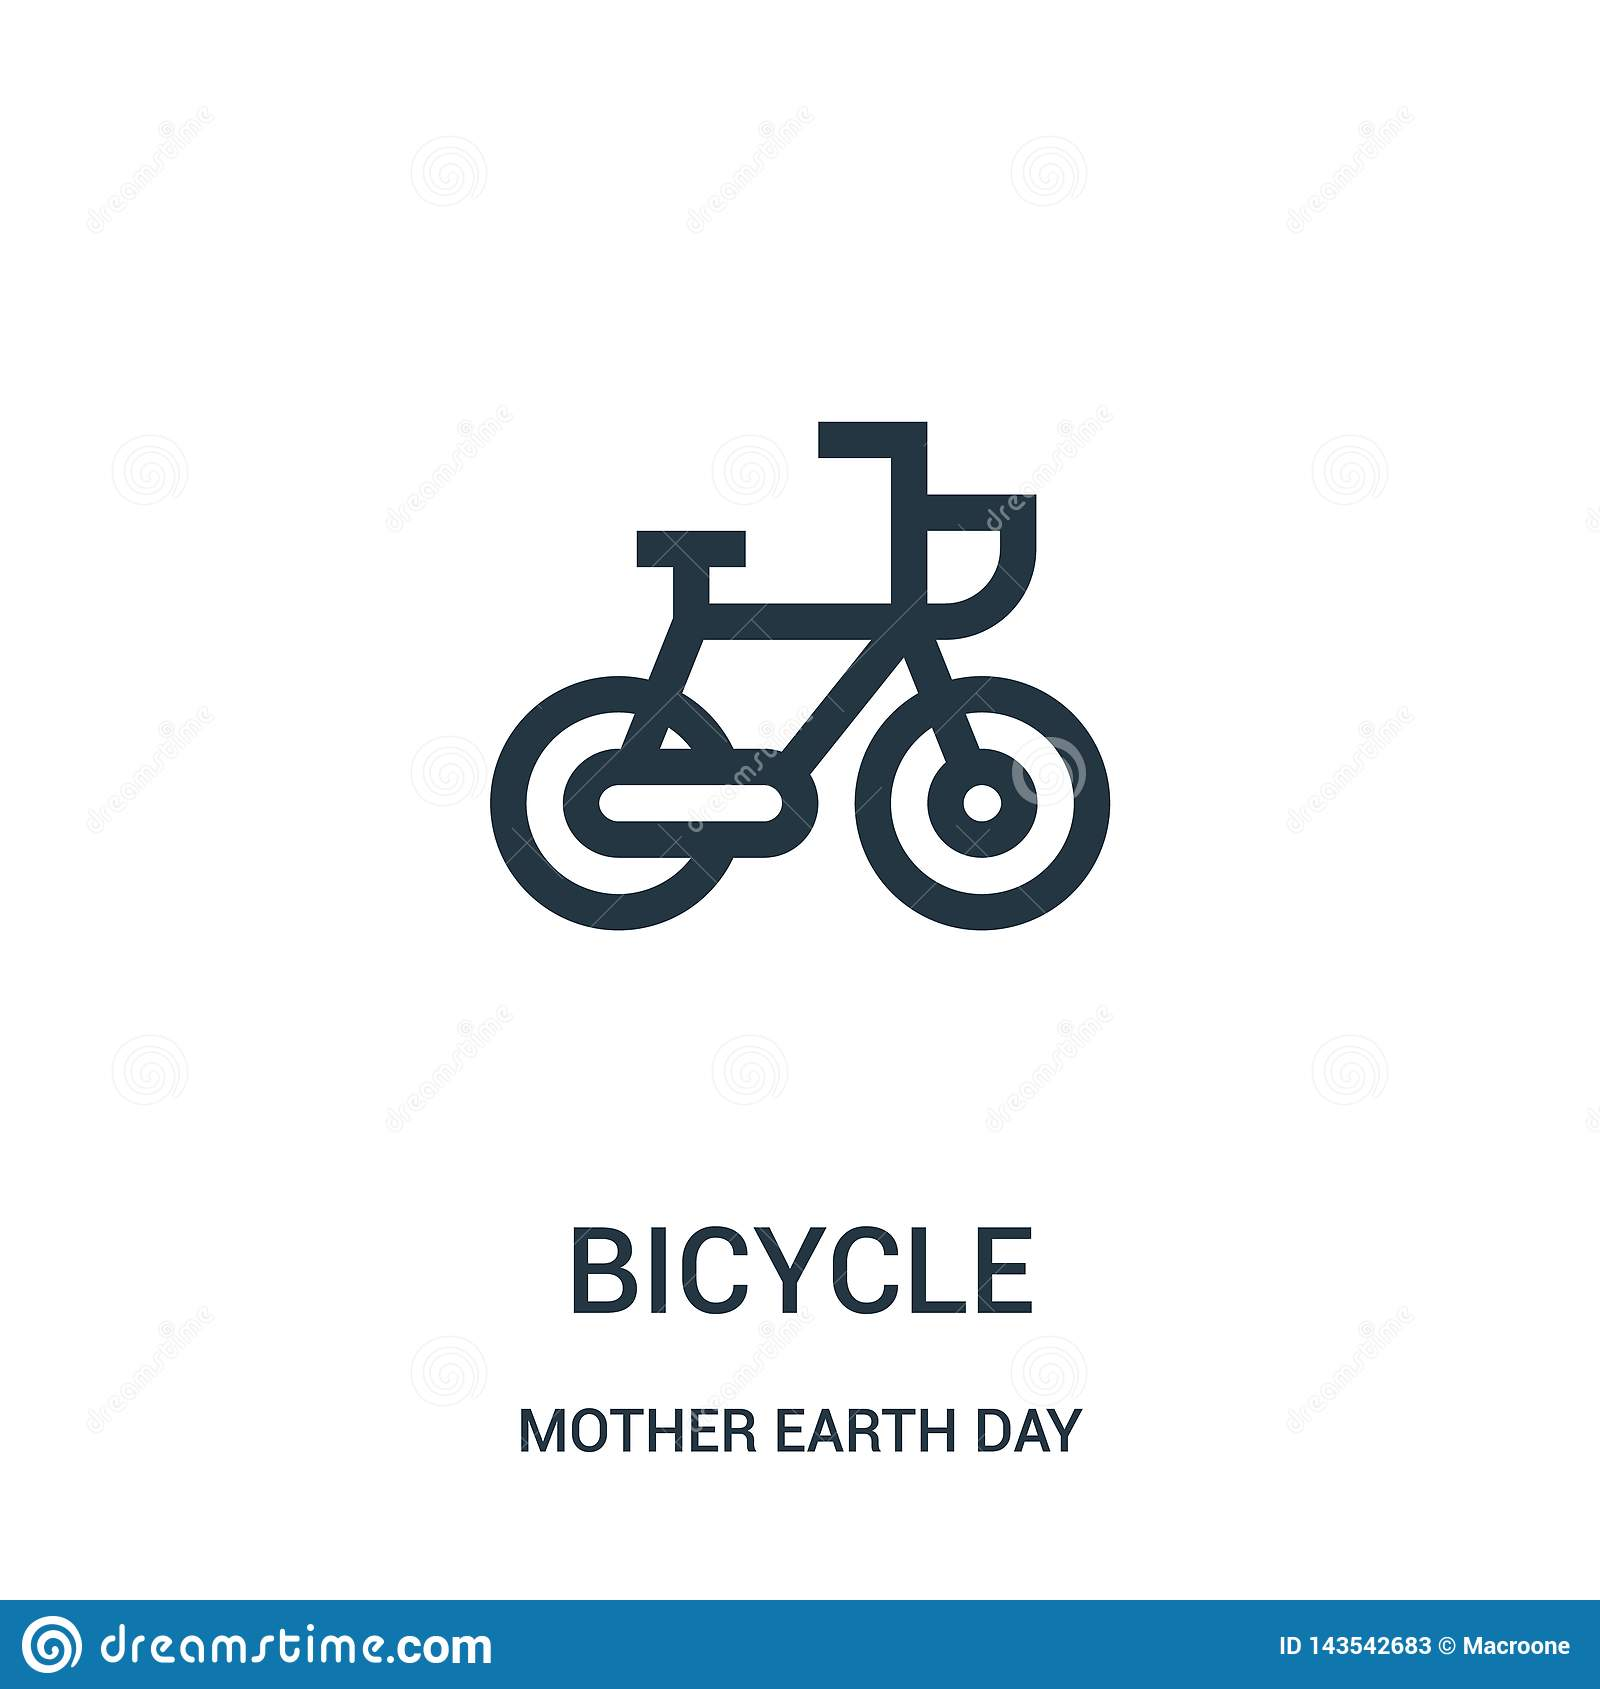 bicycle icon vector from mother earth day collection. Thin line bicycle outline icon vector illustration